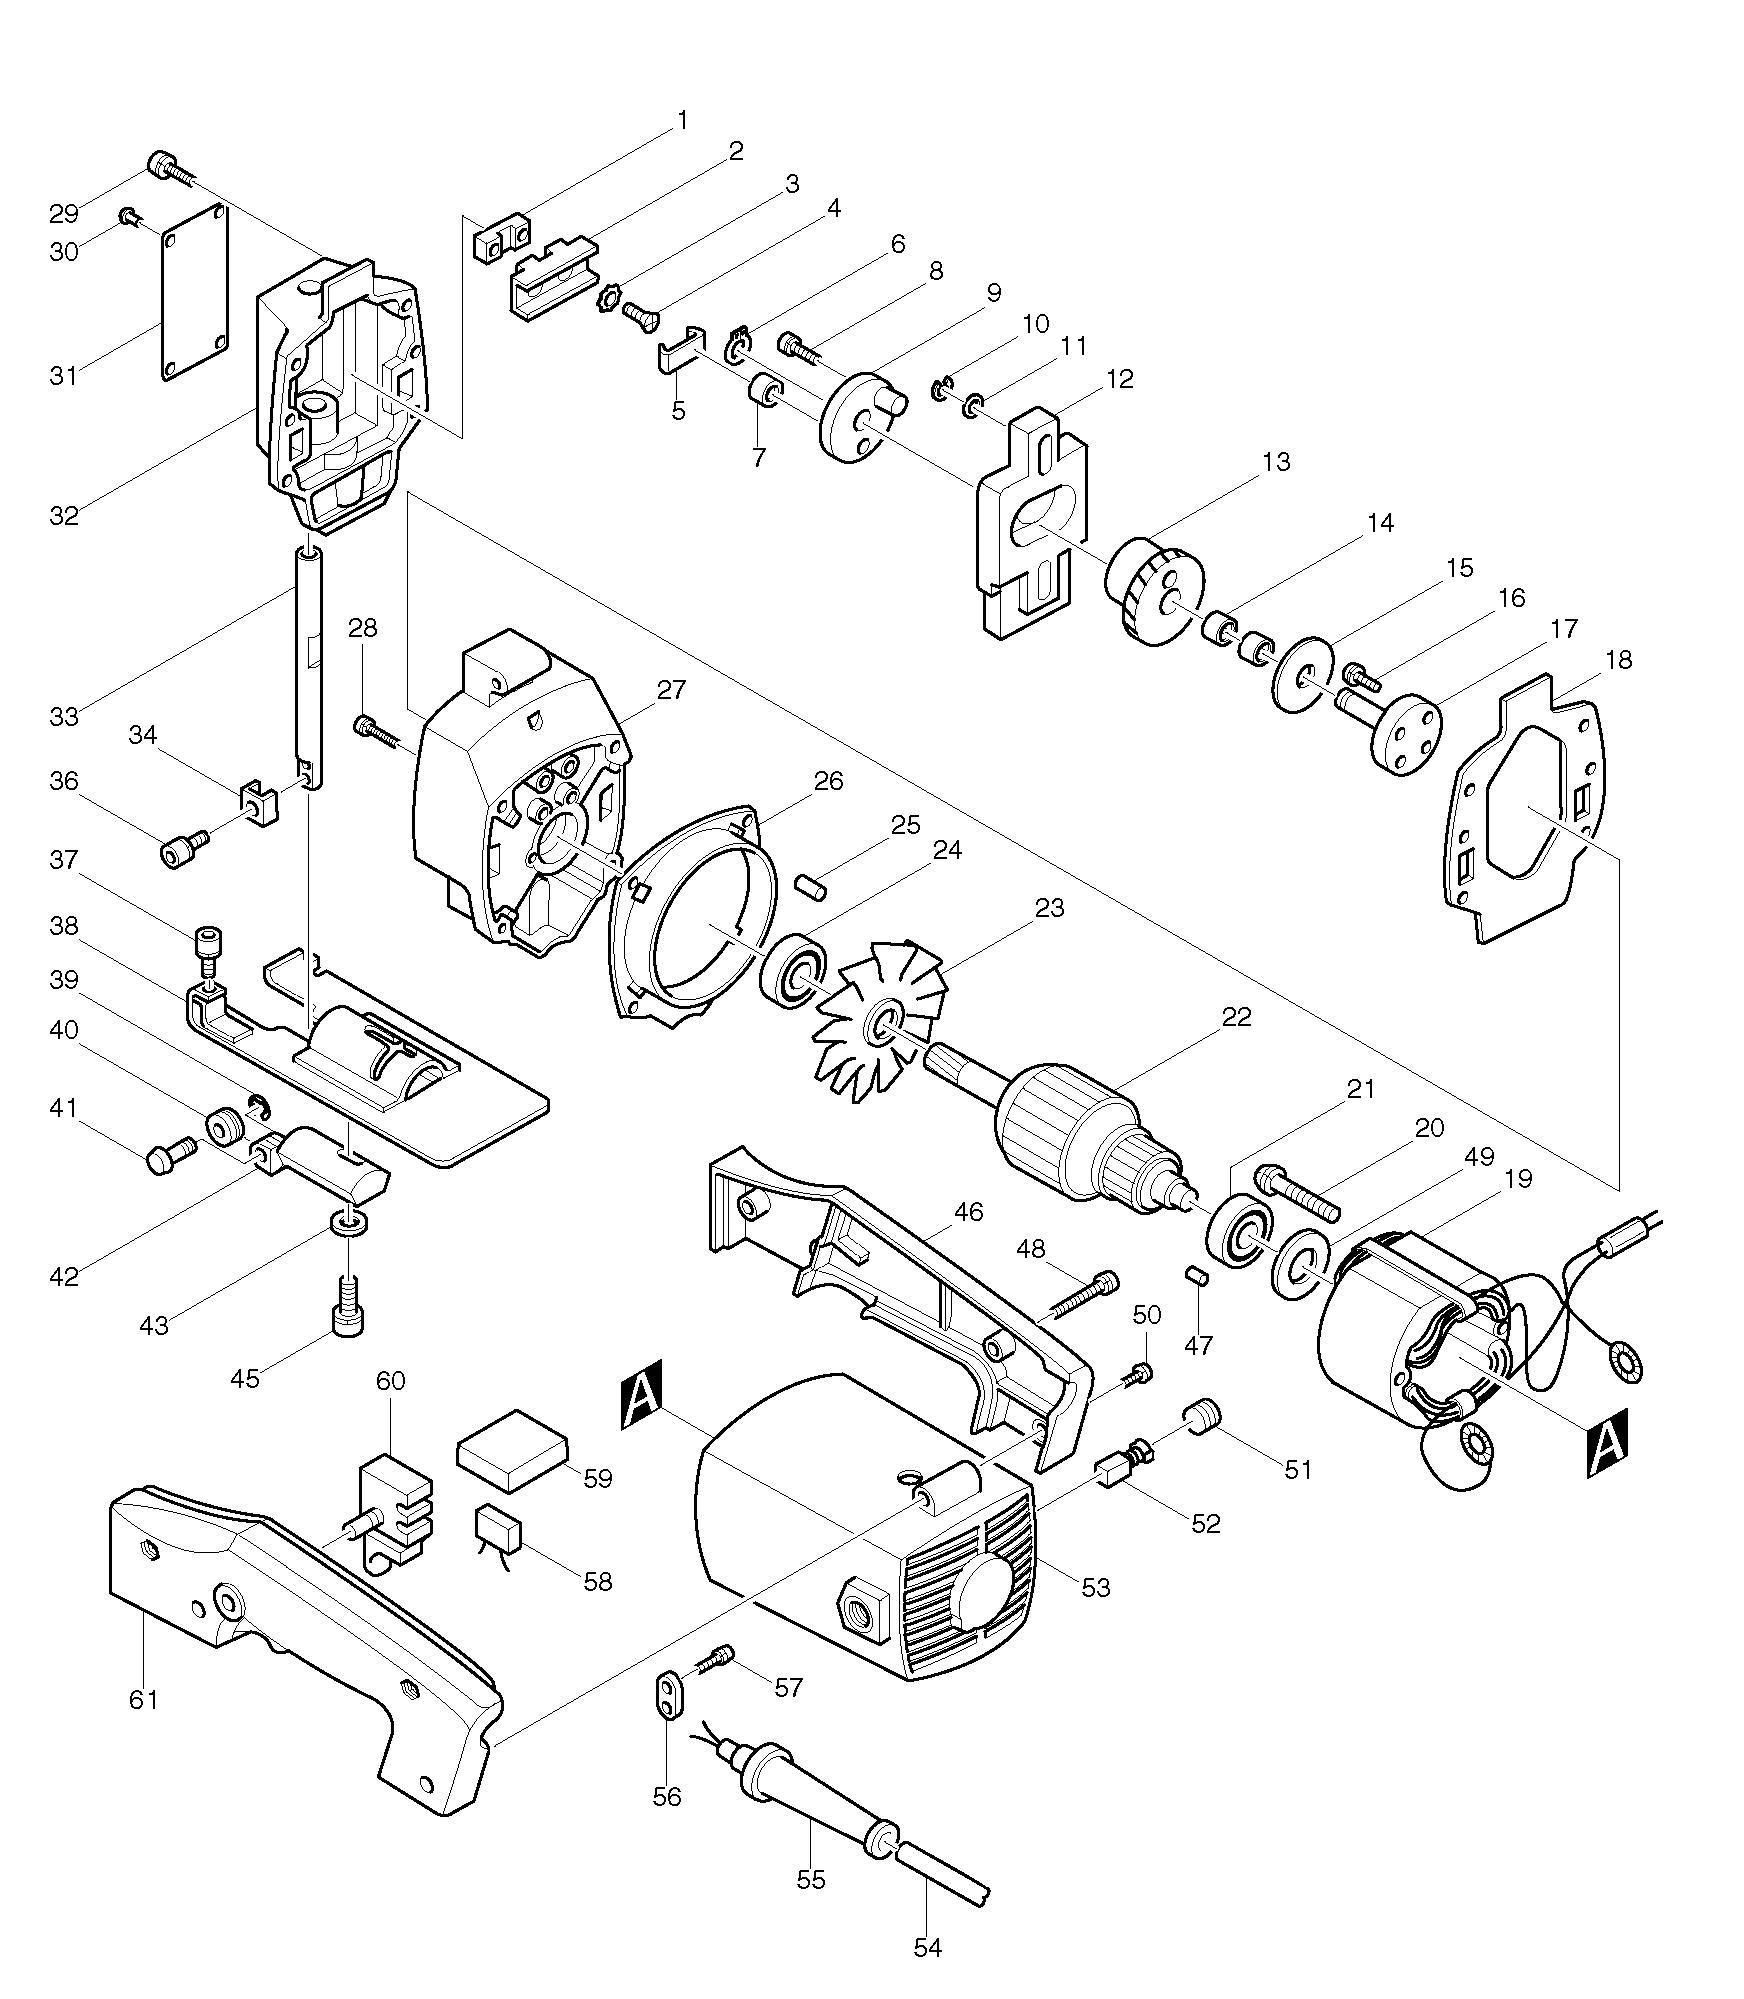 Bosch Jigsaw Parts Diagram Spares for Makita 4300bv Jigsaw Variable Speed Spare 4300bv From Of Bosch Jigsaw Parts Diagram